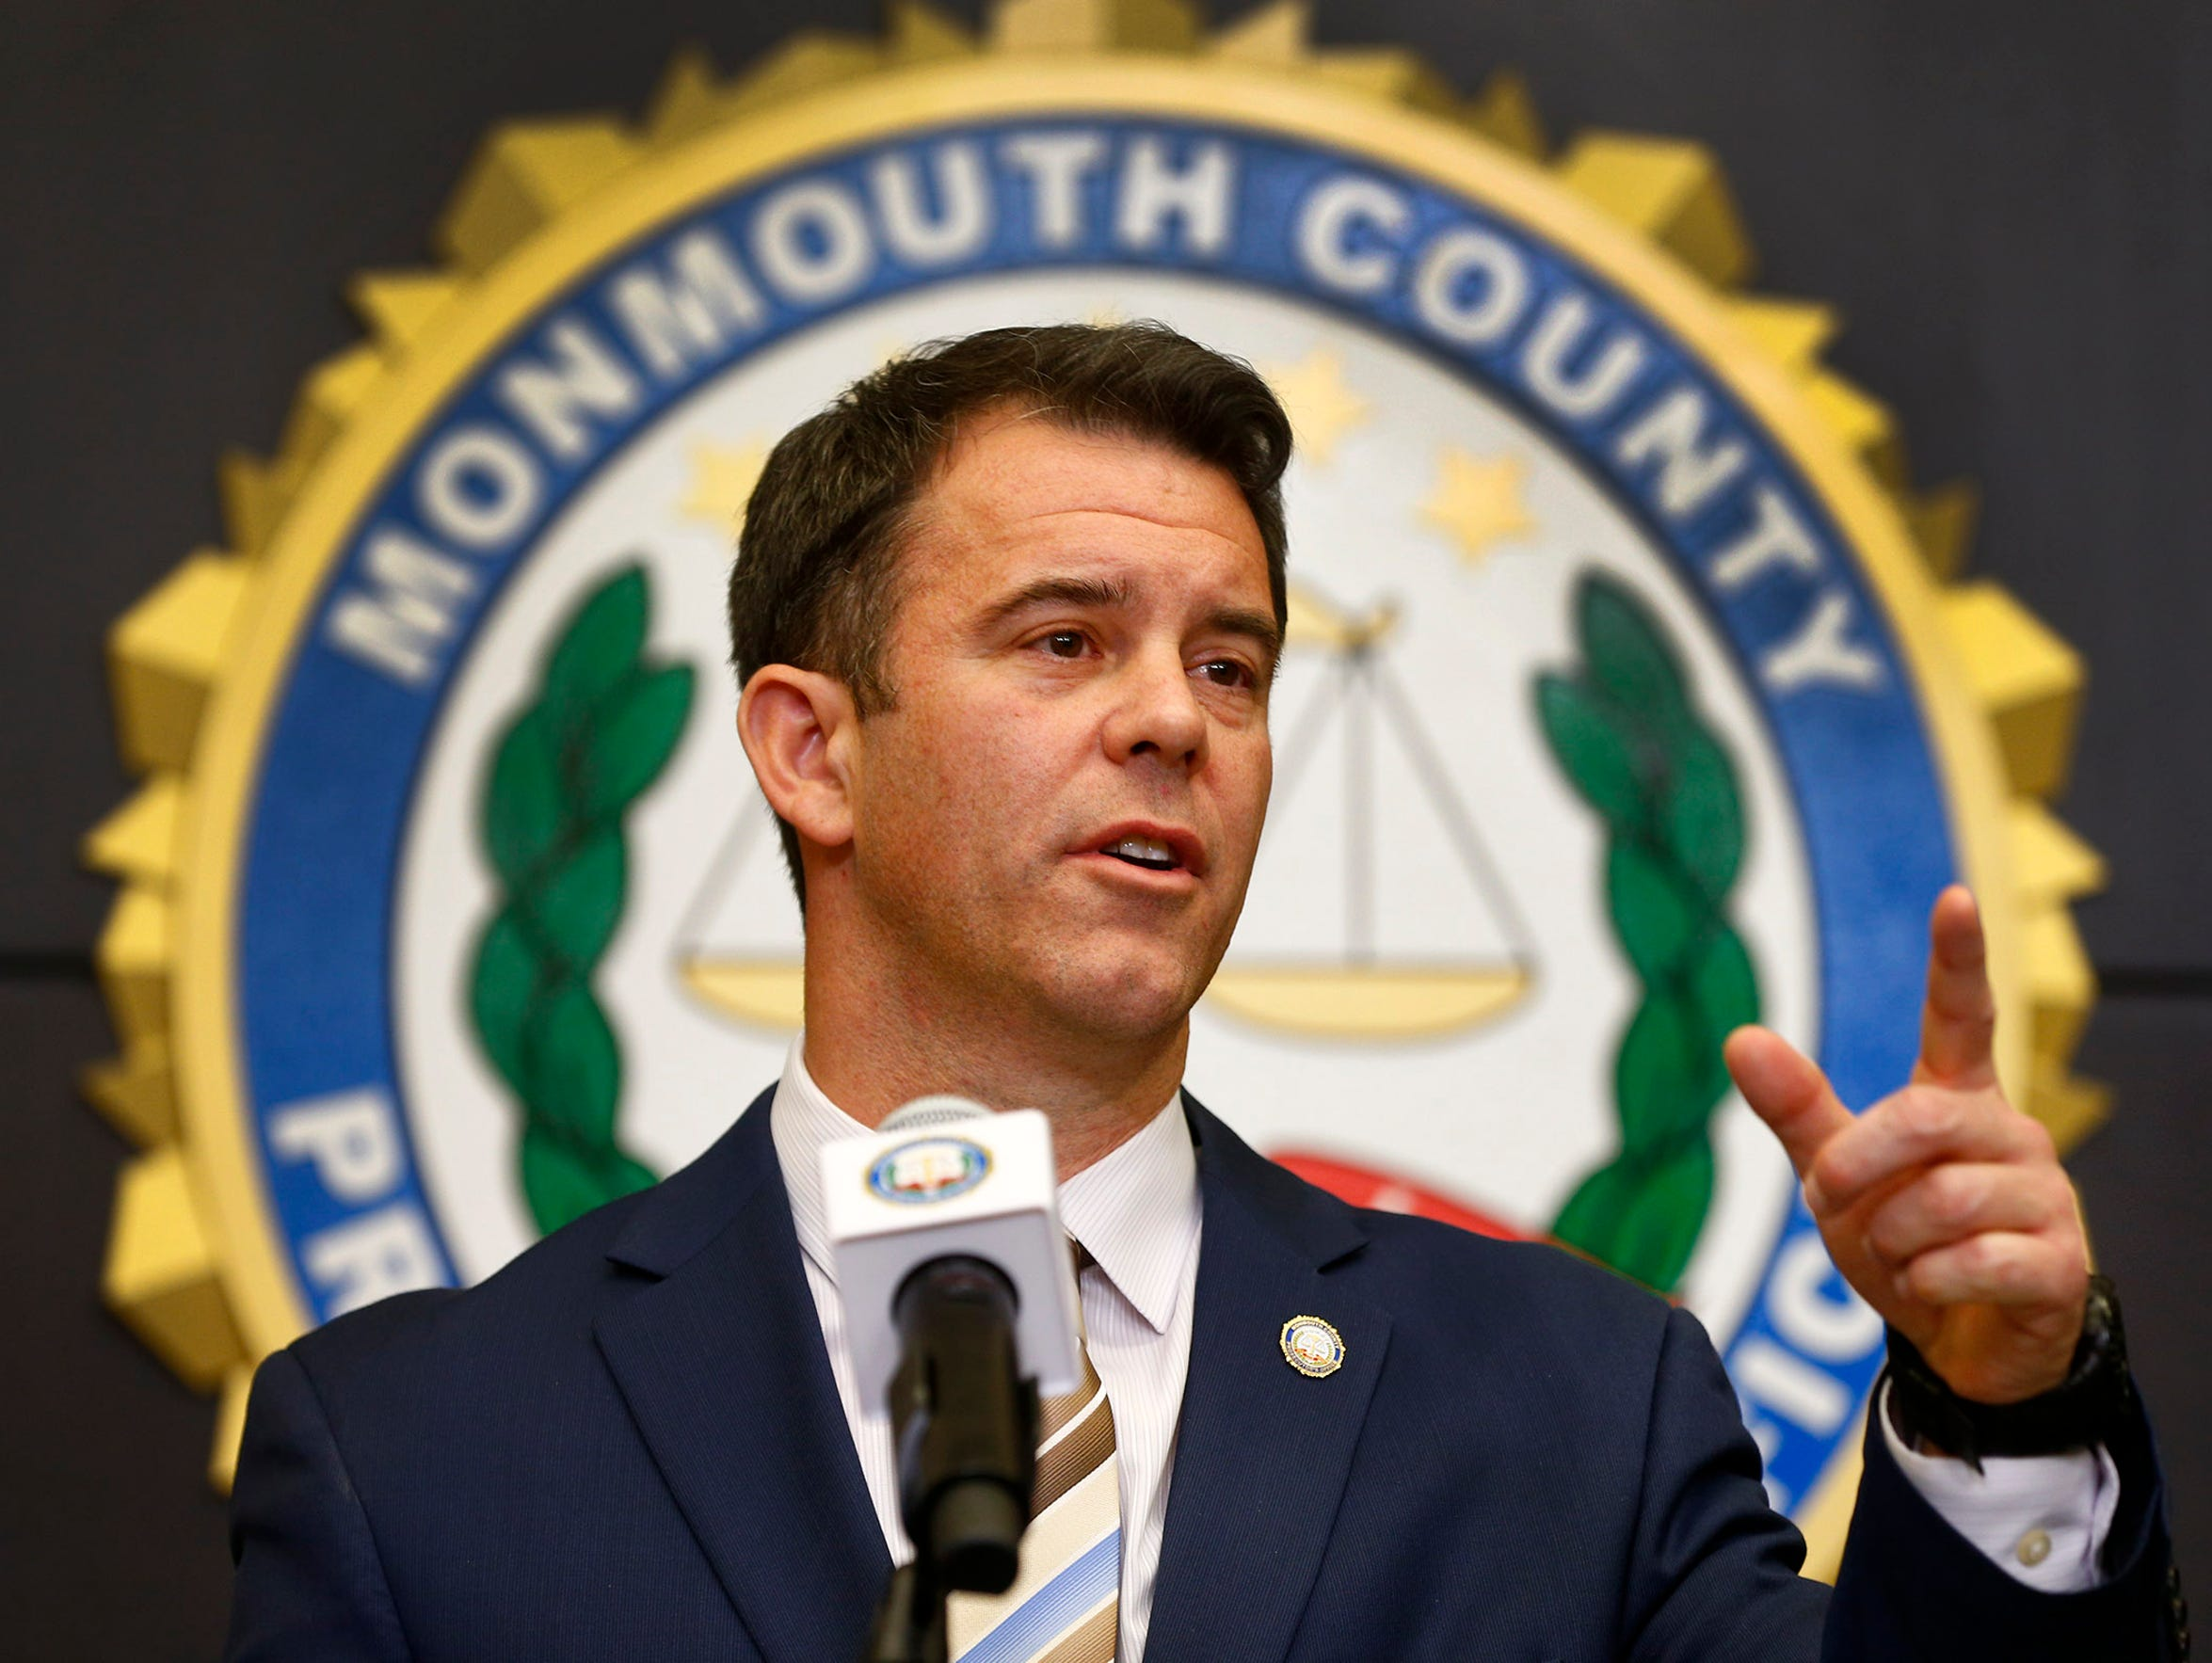 Monmouth County Prosecutor Christopher Gramiccioni at a 2018 press conference.